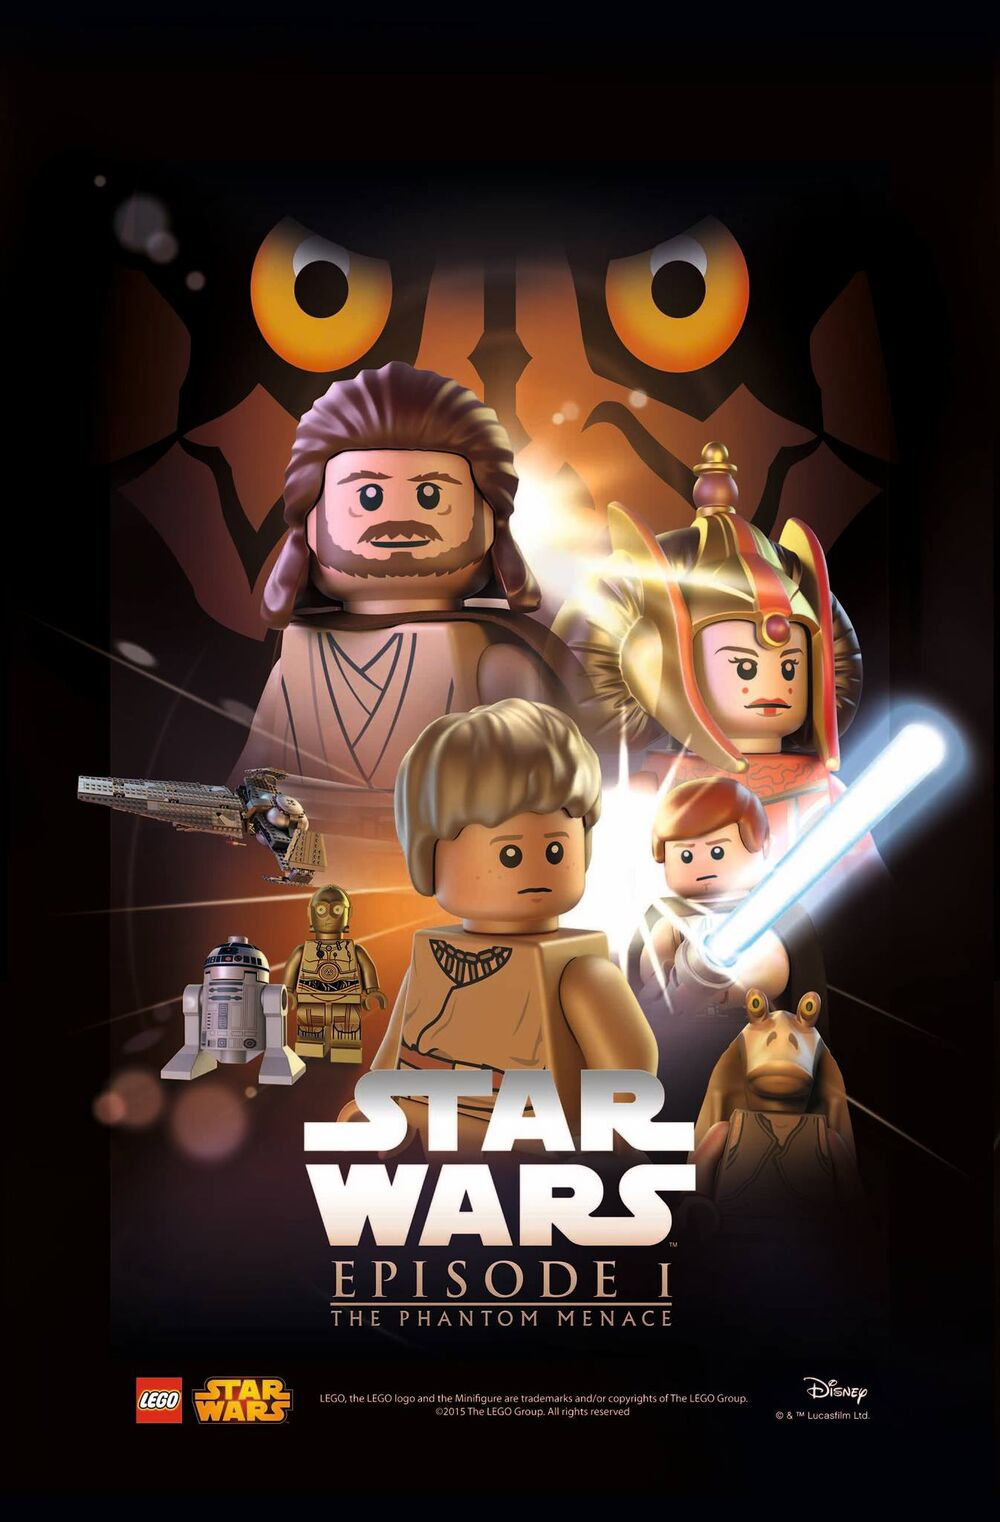 LEGO Star Wars Episode I La Menace fantome